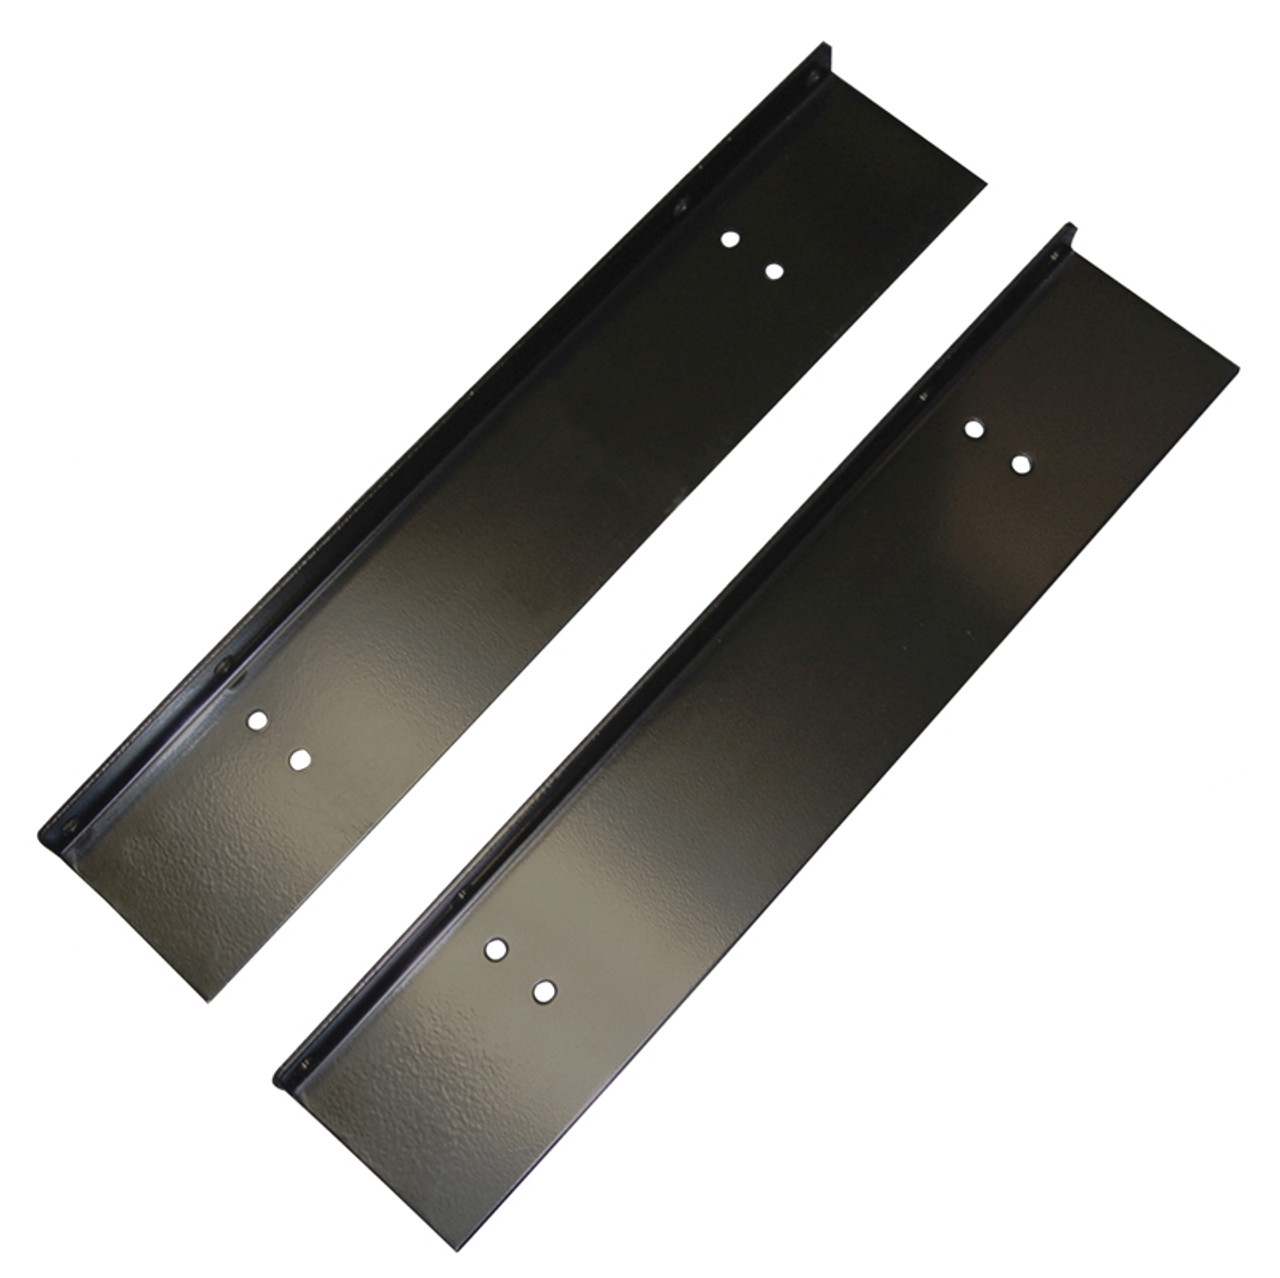 1 Seat Only, Pair Empi 62-2641 Universal Adjustable Seat Sliders With Plates